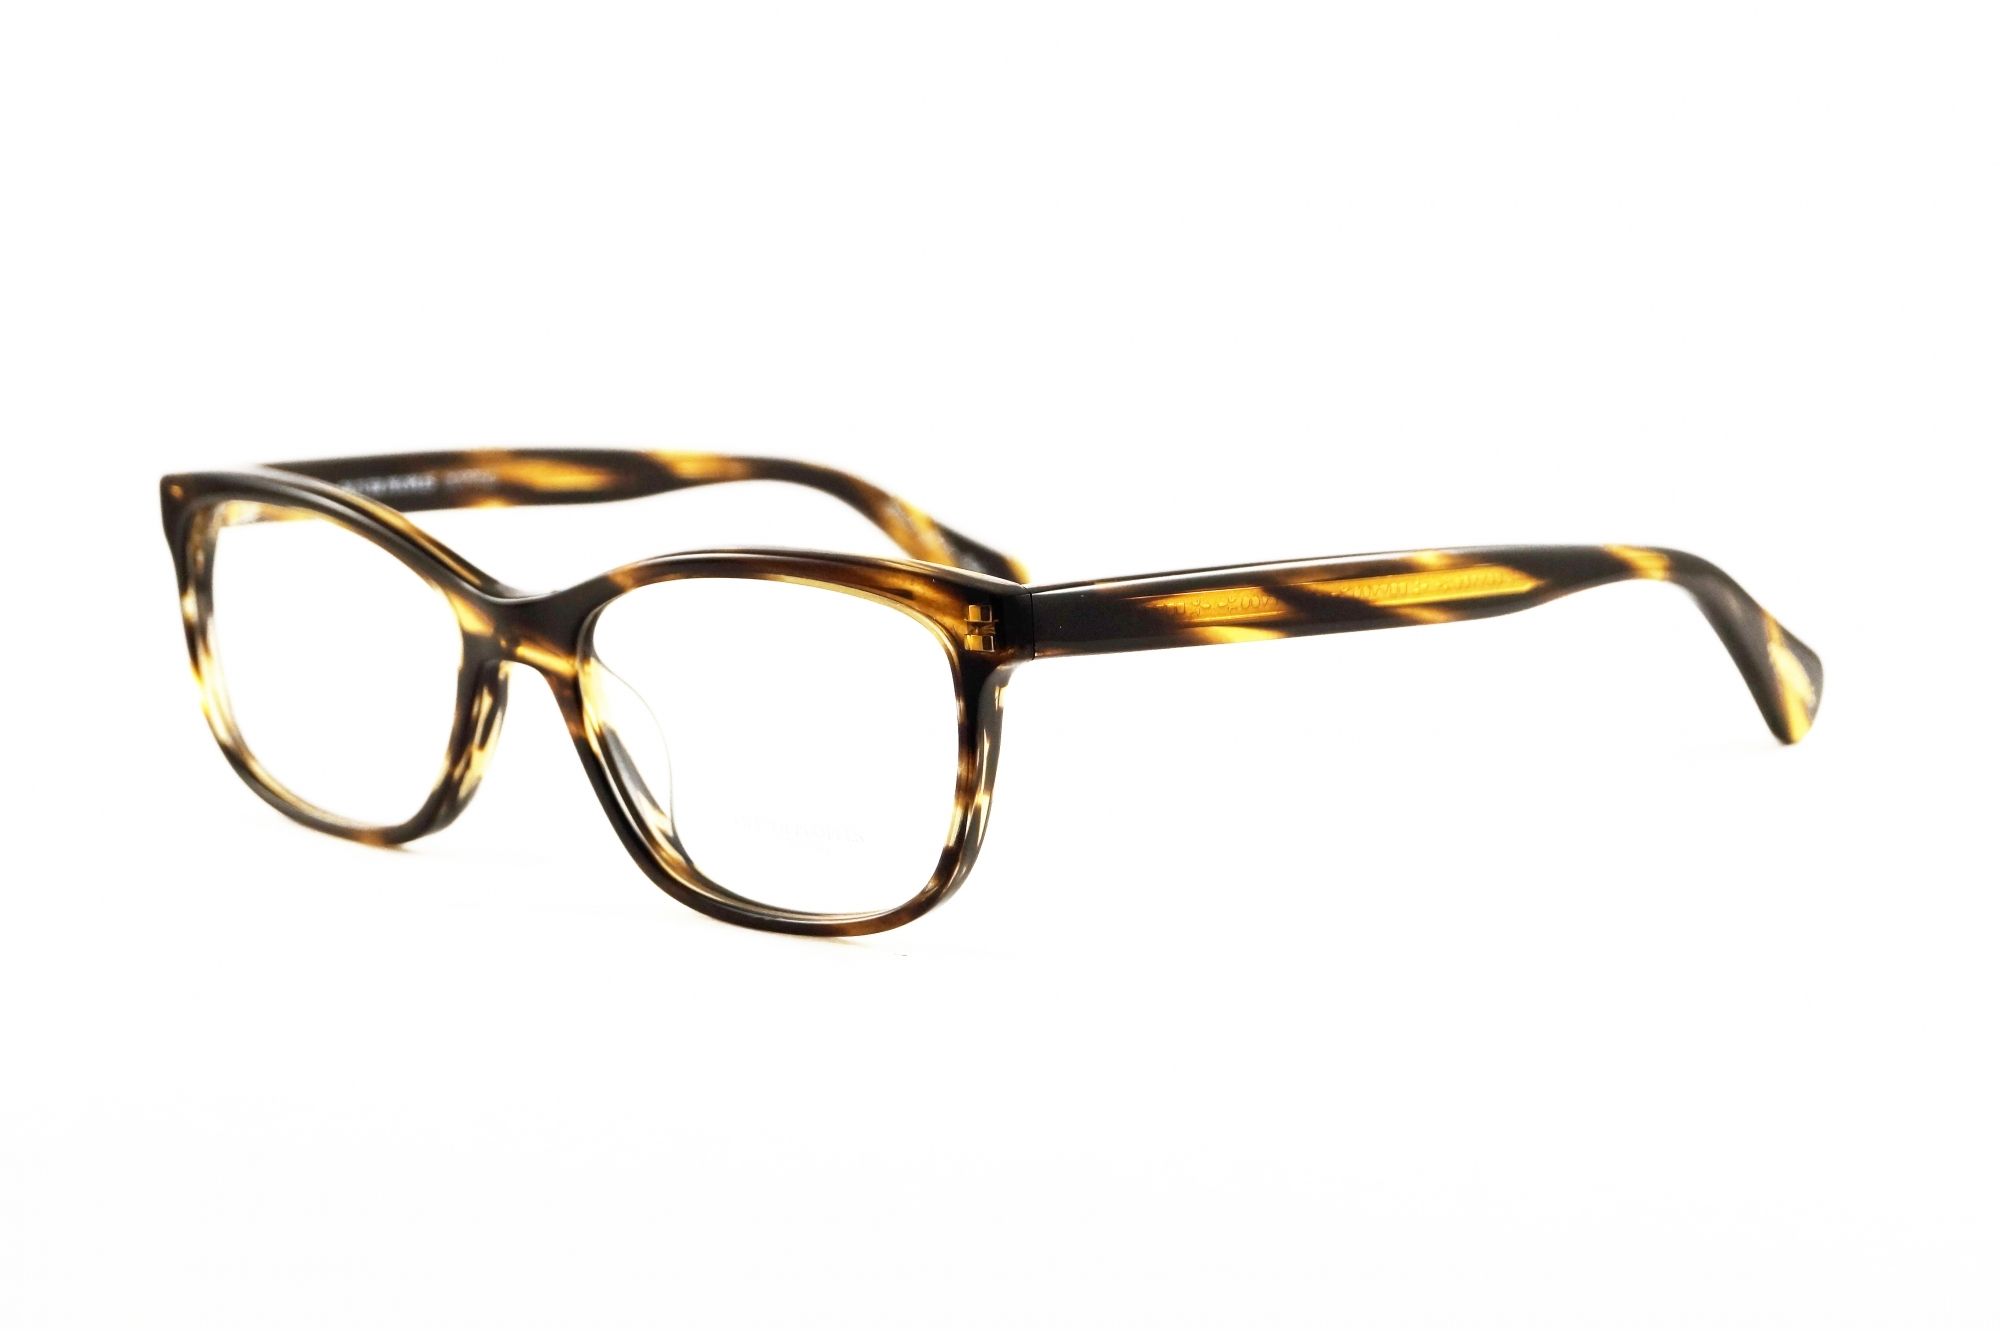 46723d3318 Oliver Peoples FOLLIES OV 5194 1003 Cocobolo